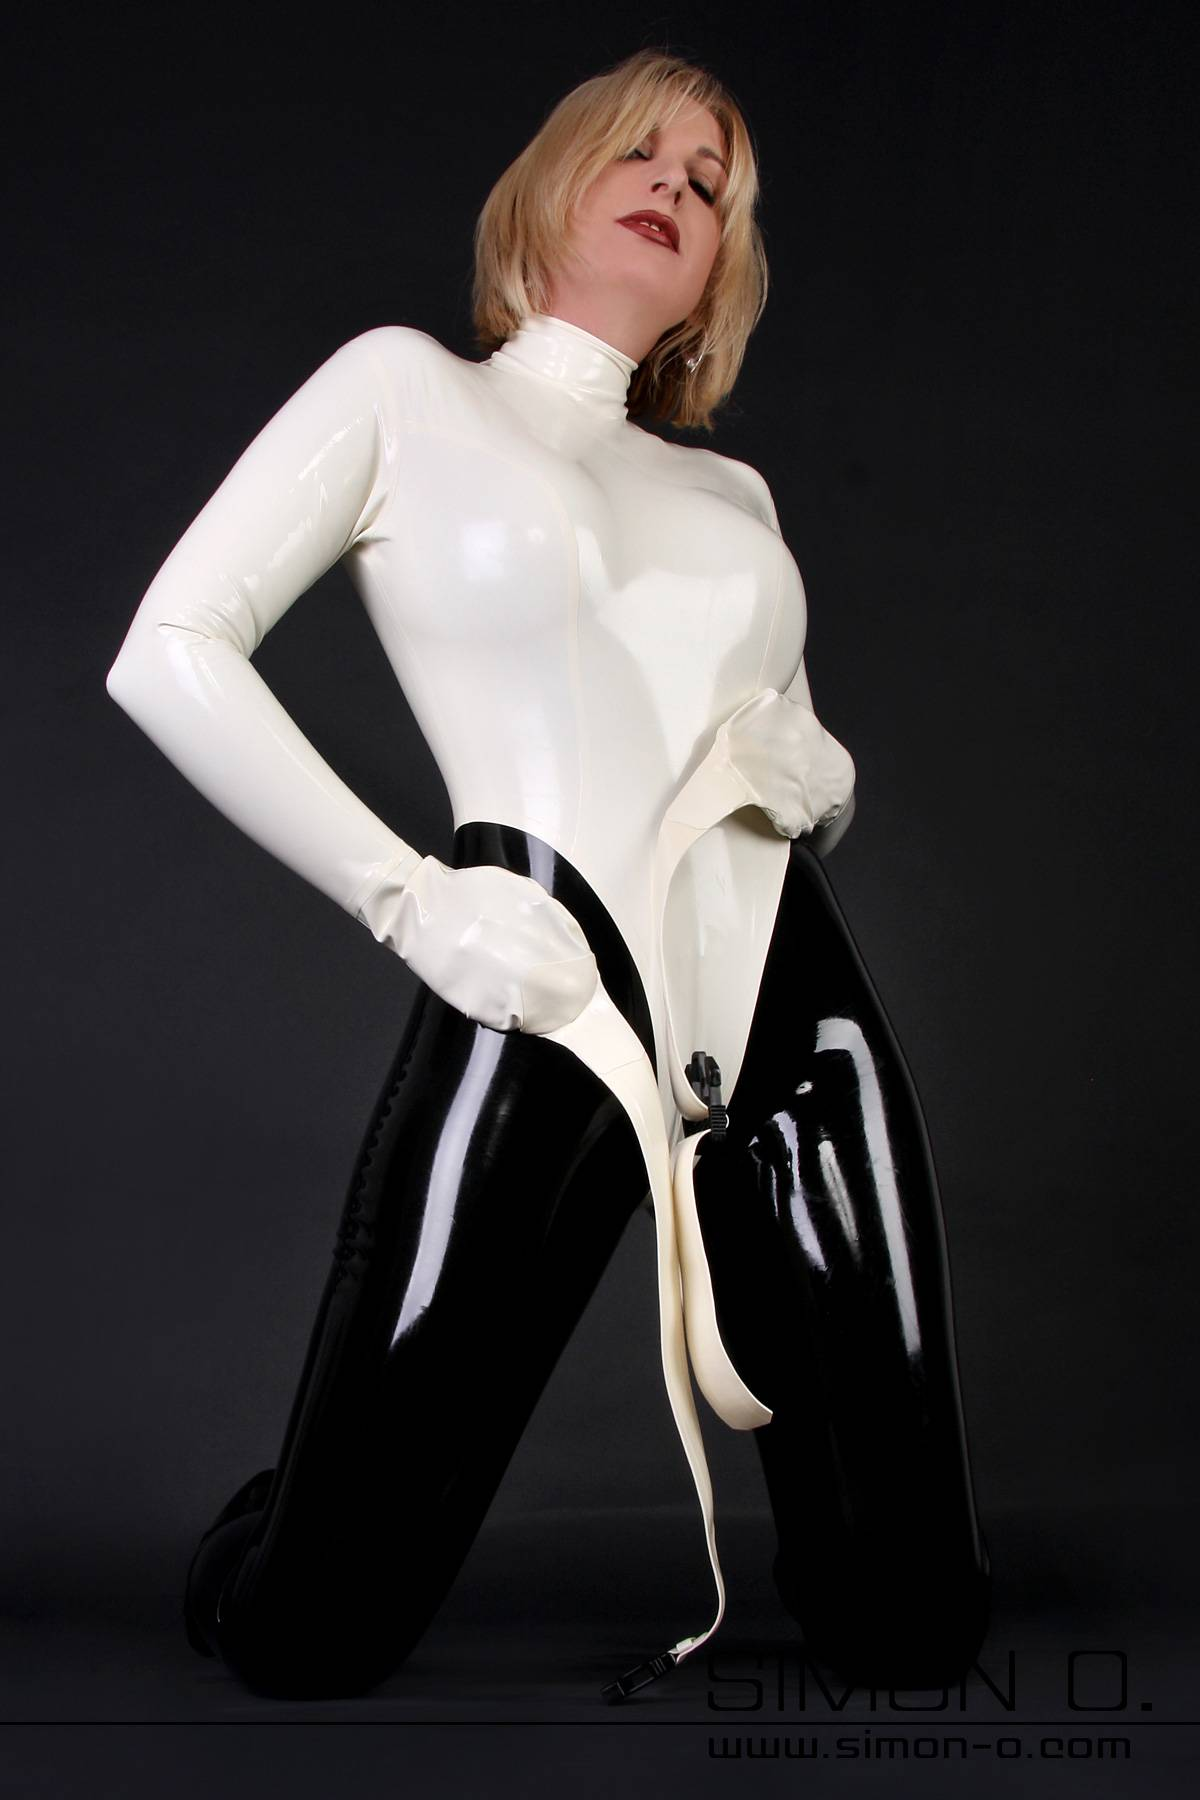 Highly erotic straightjacket made of strong latex. This latex body in straightjacket form features attached mittens with straps for the ultimate in security …